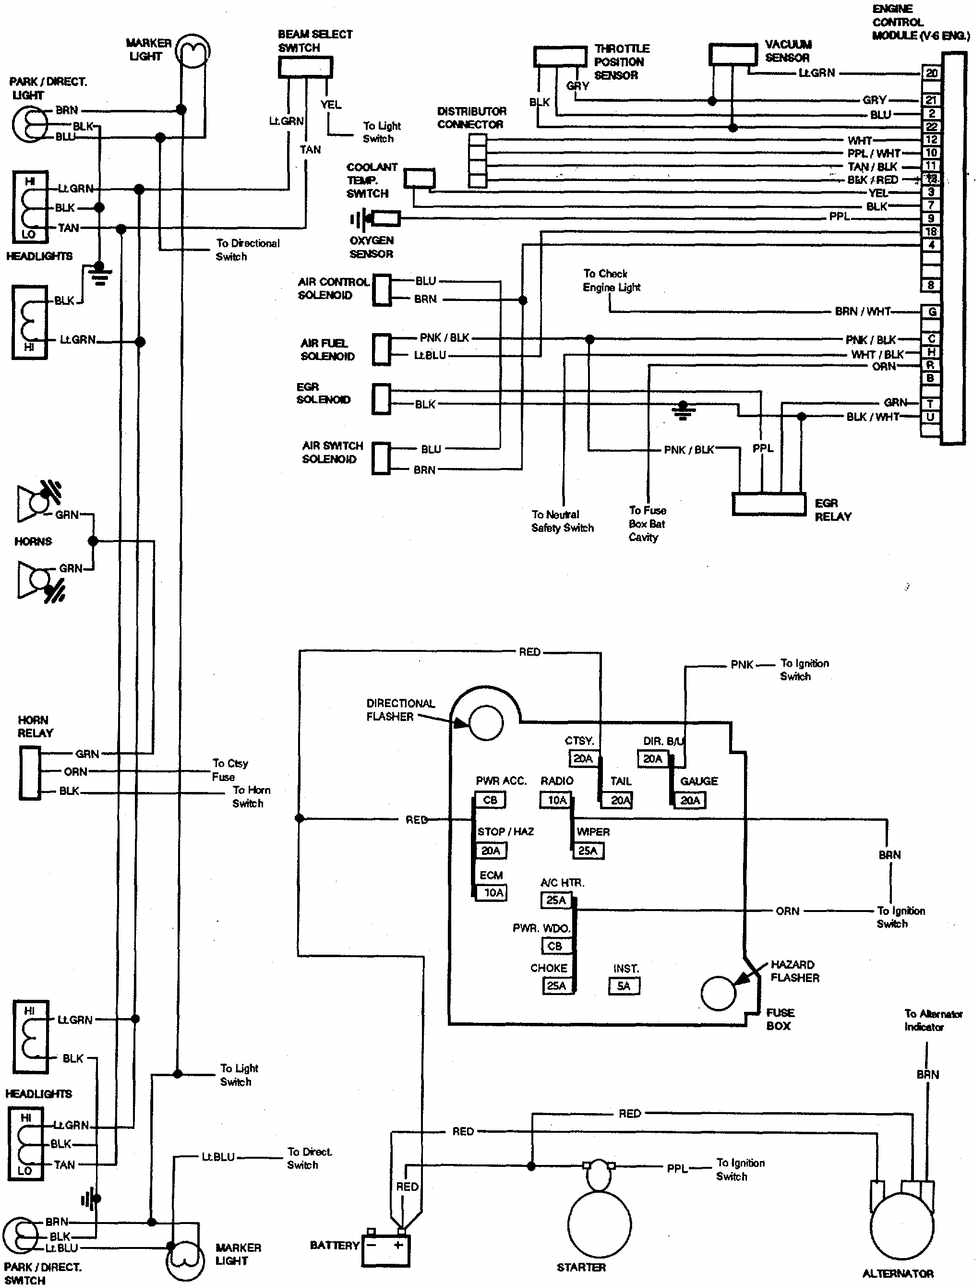 1987 Chevy Motorhome Wiring Schematic | Wiring Liry on